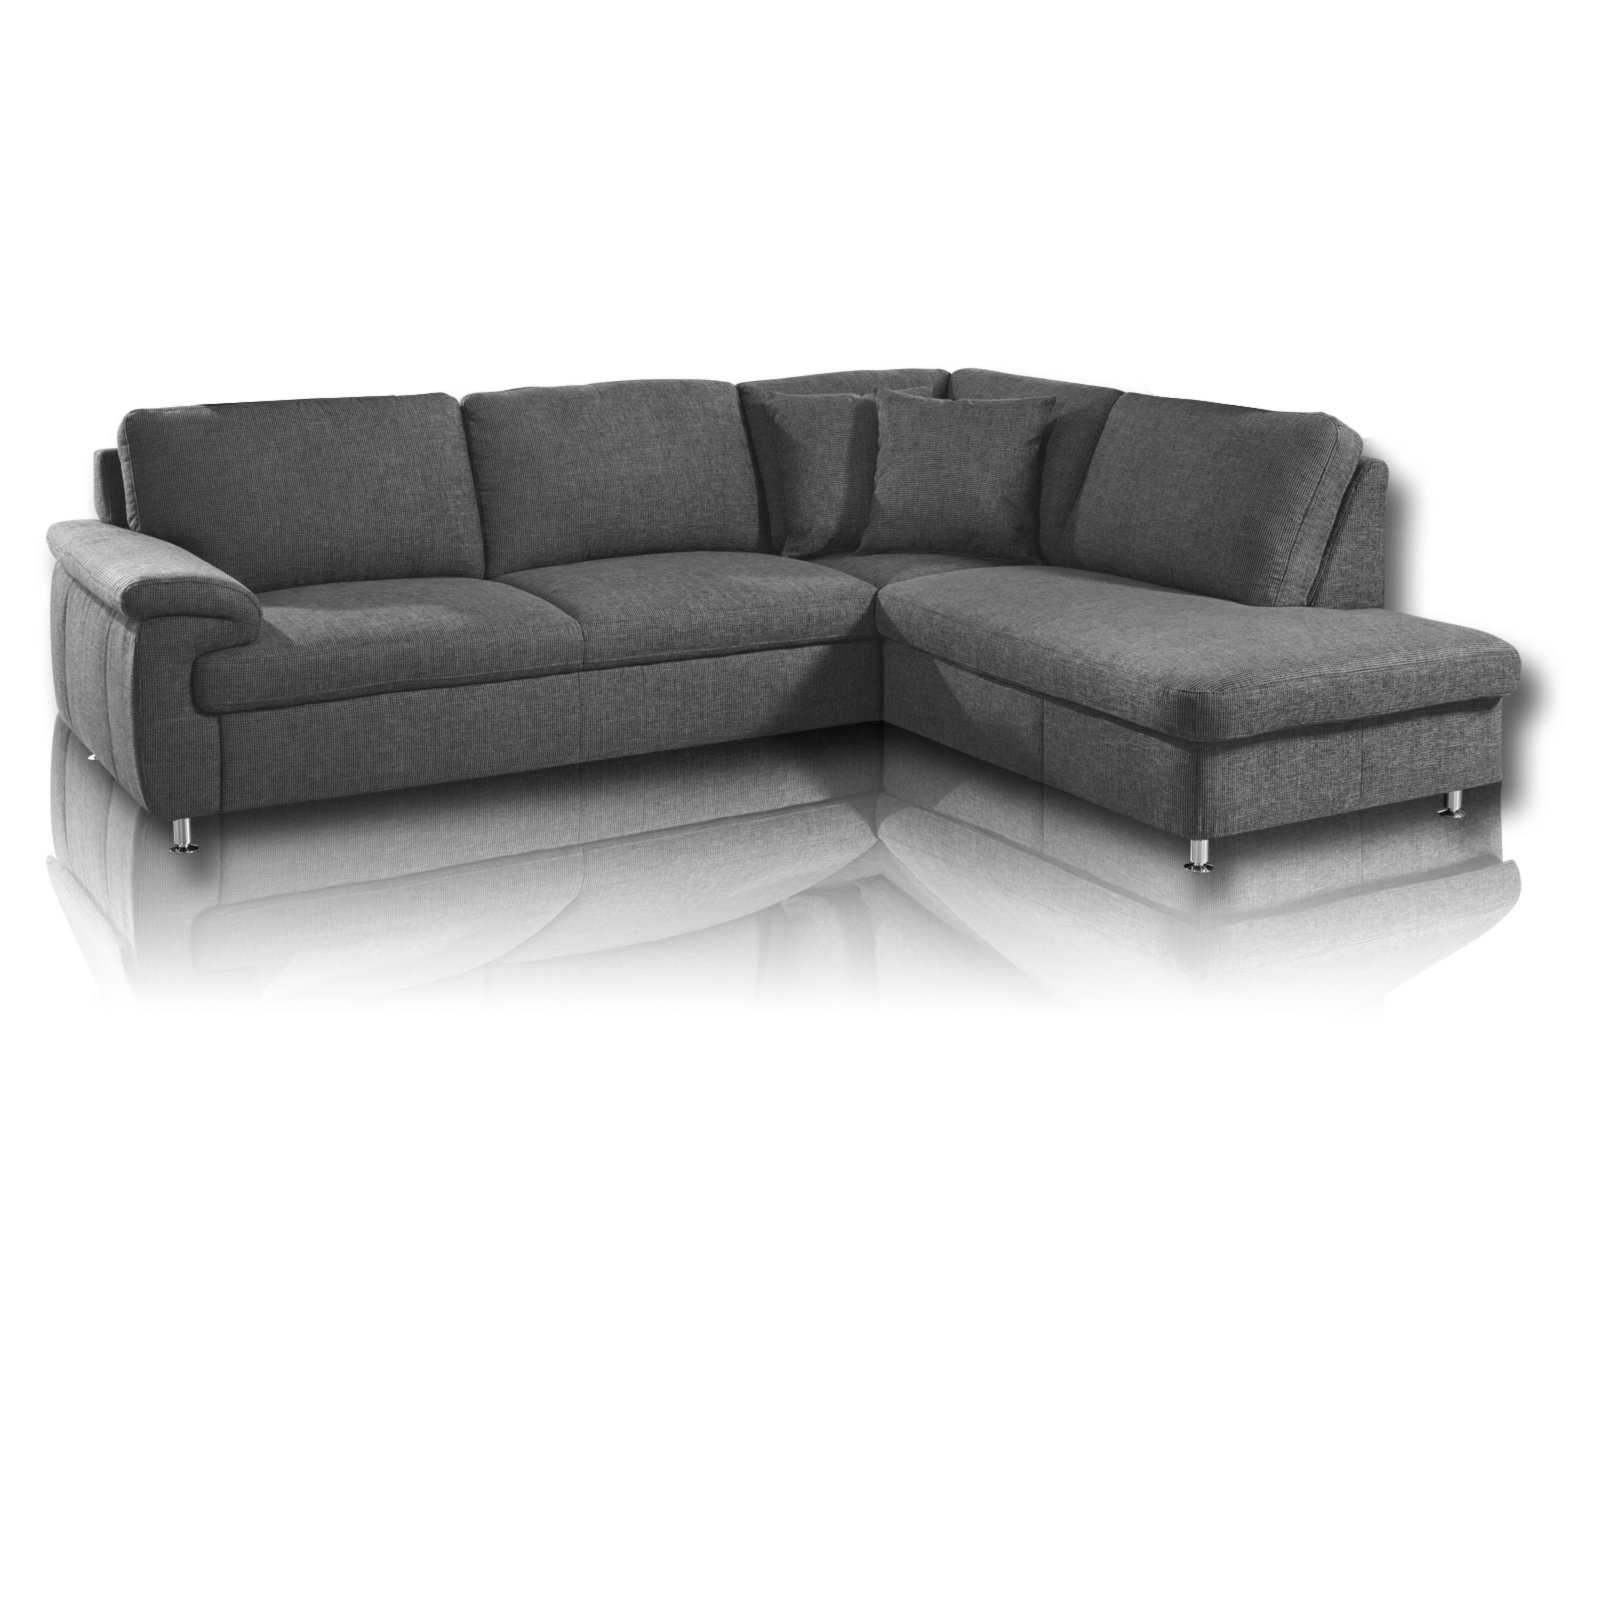 ecksofa grau ecksofas l form sofas couches m bel m belhaus roller. Black Bedroom Furniture Sets. Home Design Ideas